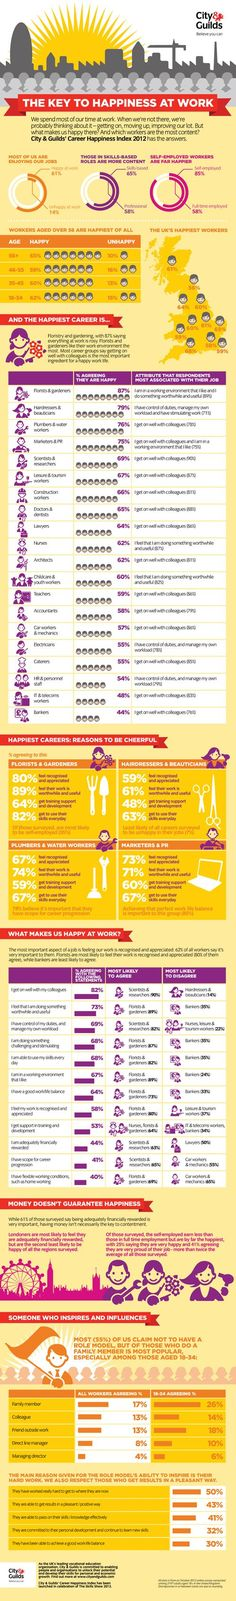 The Key To Happiness At Work [INFOGRAPHIC]  http://www.roehampton-online.com/?ref=4231900    #office  #business